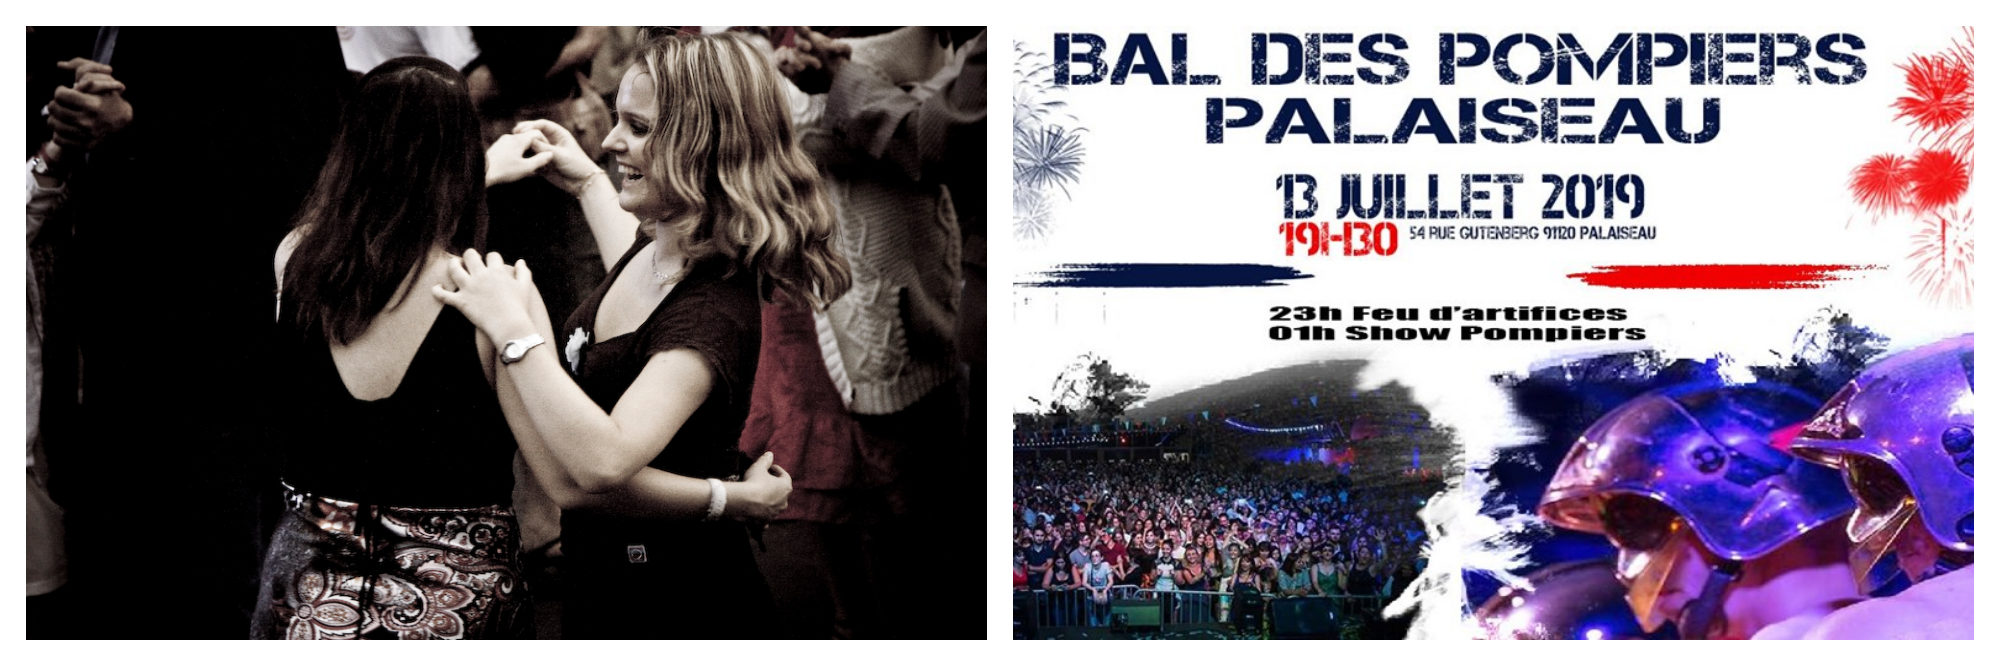 Two women dancing at a firemen's ball for Bastille Day (left). A poster for a Bal des Pompiers (right).